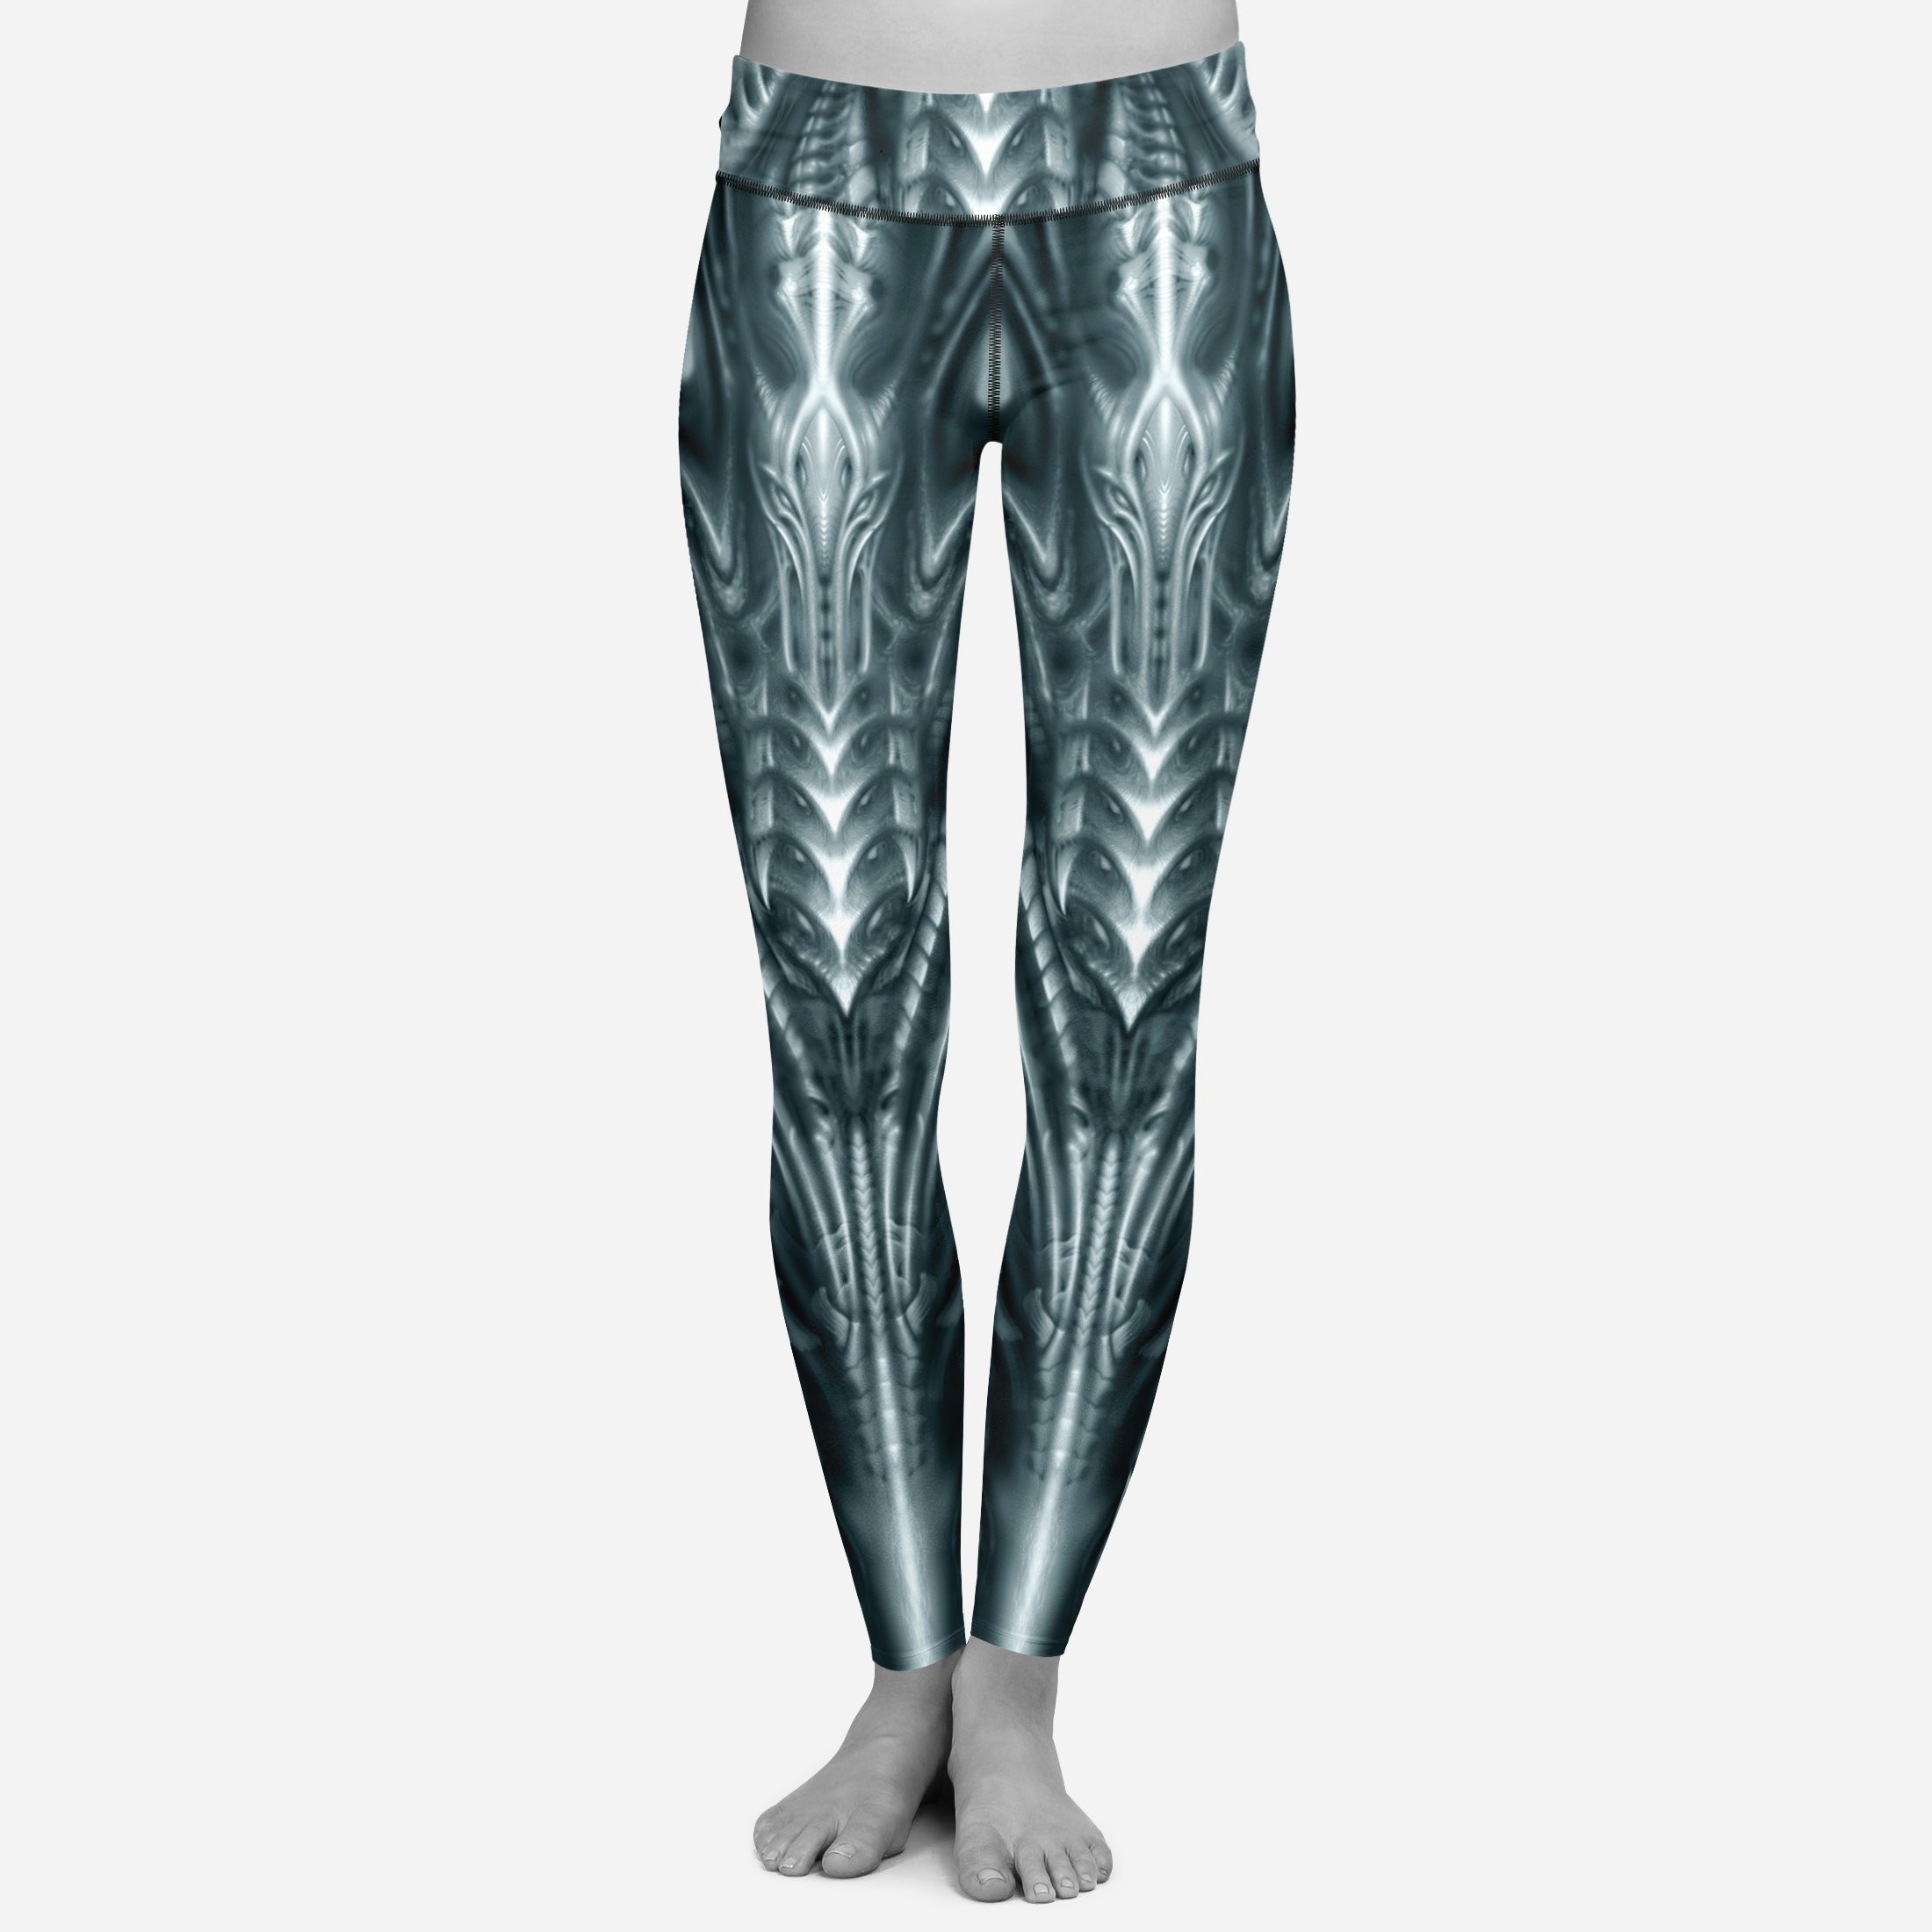 Biomech Leggings